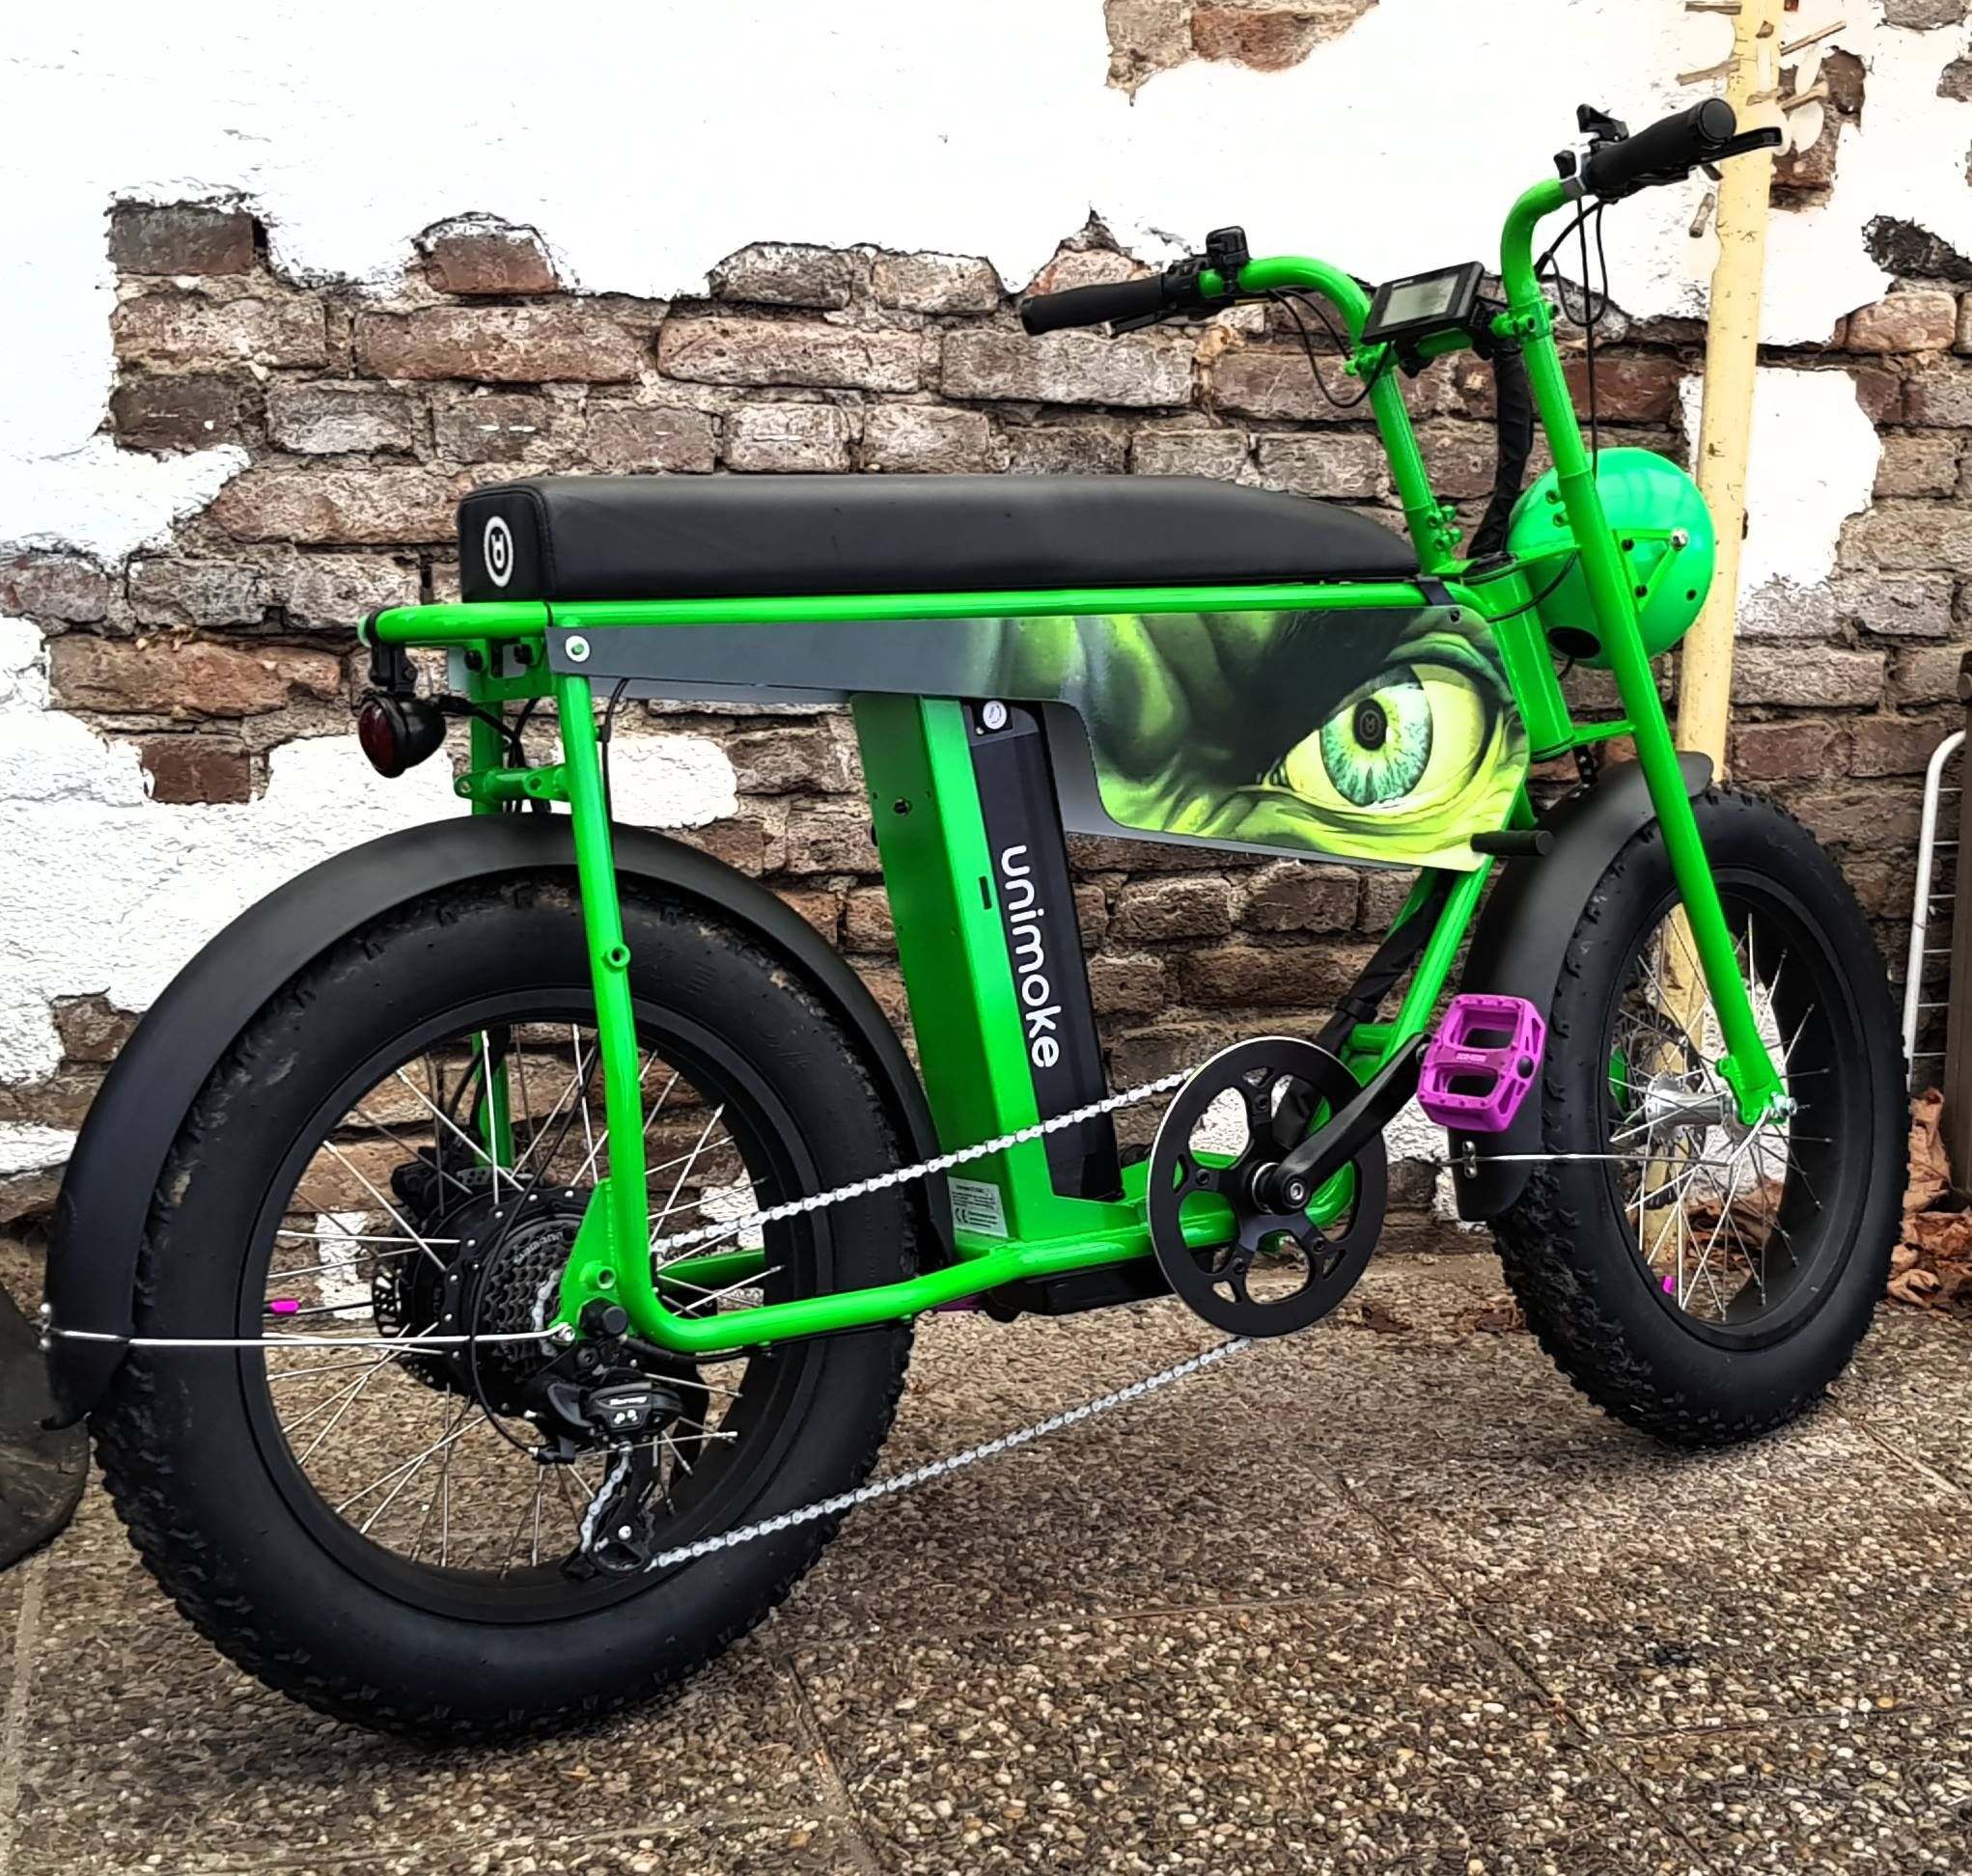 Our UNI Moke Owners really make sure to have 100% unique bike configurations like this custom built lime green one: The HULK!  Join our community here: